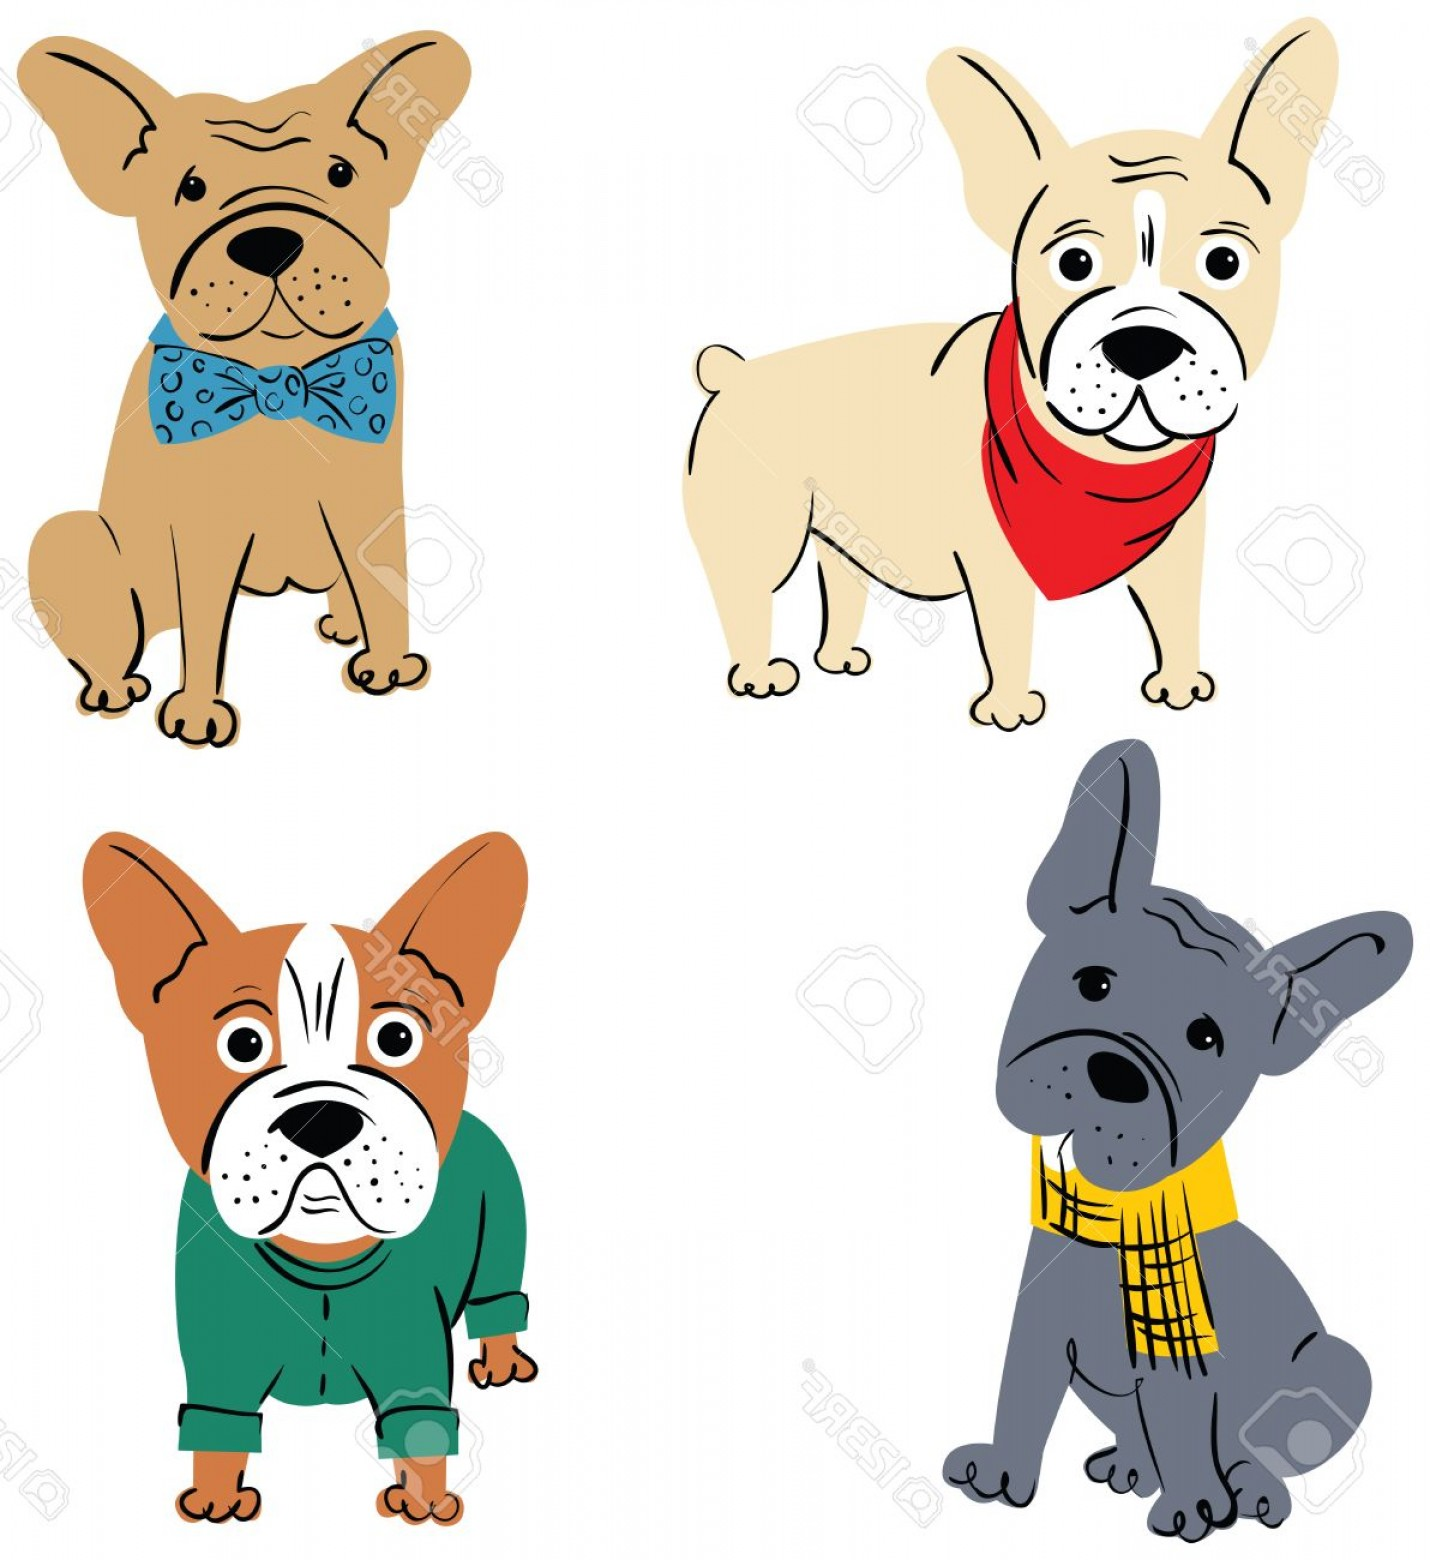 Marine Bulldog Logo In Vector: Photostock Vector Cartoon Vector Character French Bulldog Isolated On White Background Funny Puppies In Cute Clothes